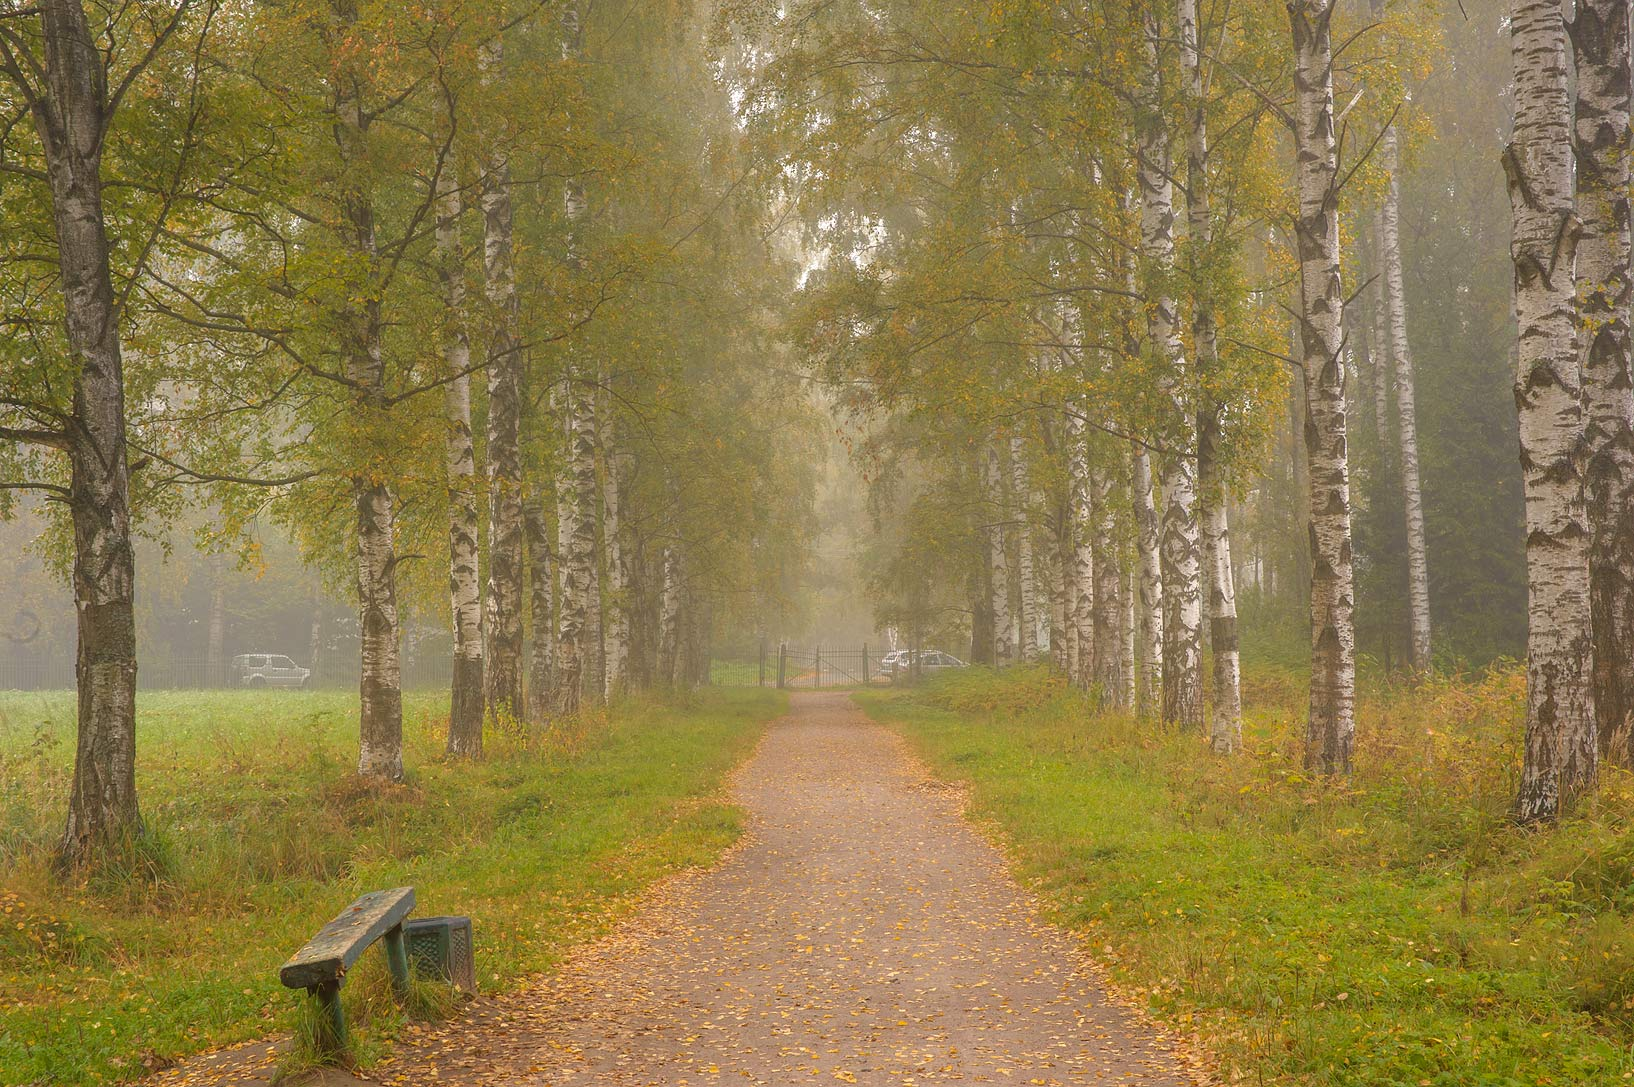 Bench at Krasnogo Bugra (Solntsa) Alley in fog in...a suburb of St.Petersburg, Russia